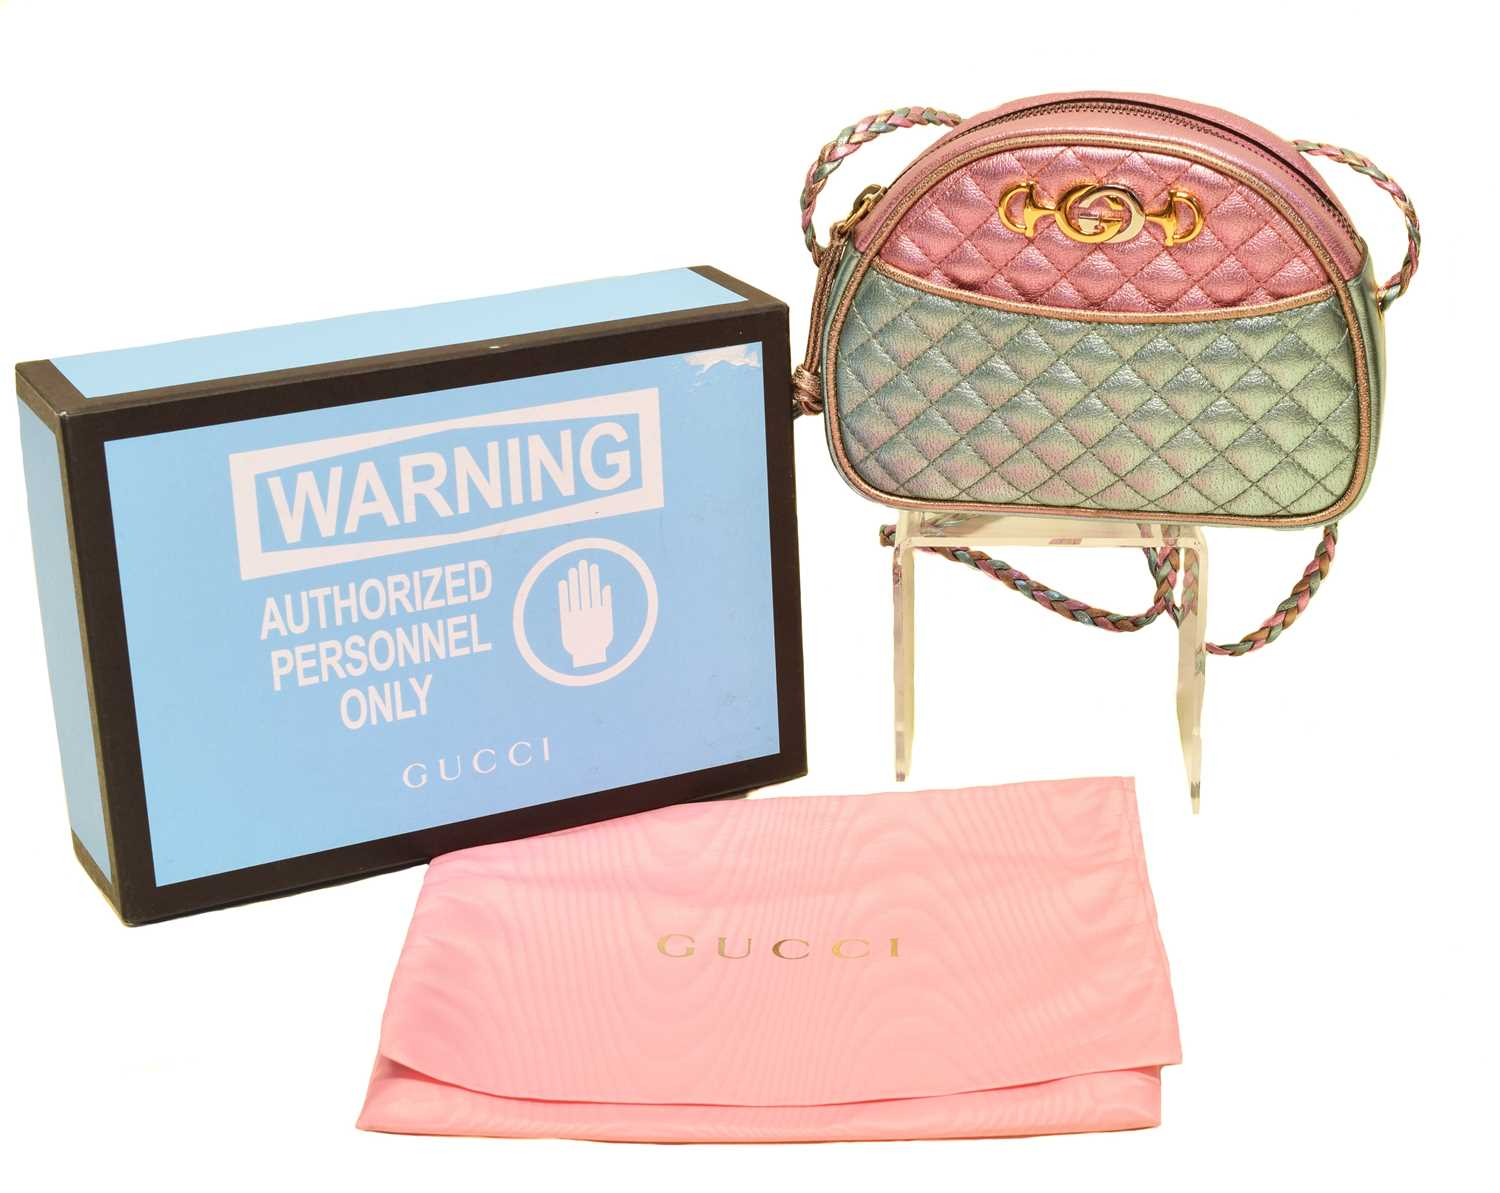 A Gucci Trapuntata Crossbody Mini Bag, the metallic pink, blue and gold laminated quilted calf leather exterior, with interlaced leather shoulder straps, and gold and silver tone hardware, serial no. 534951-534563. With maker's detachable keyring, booklet, box and dustbag.